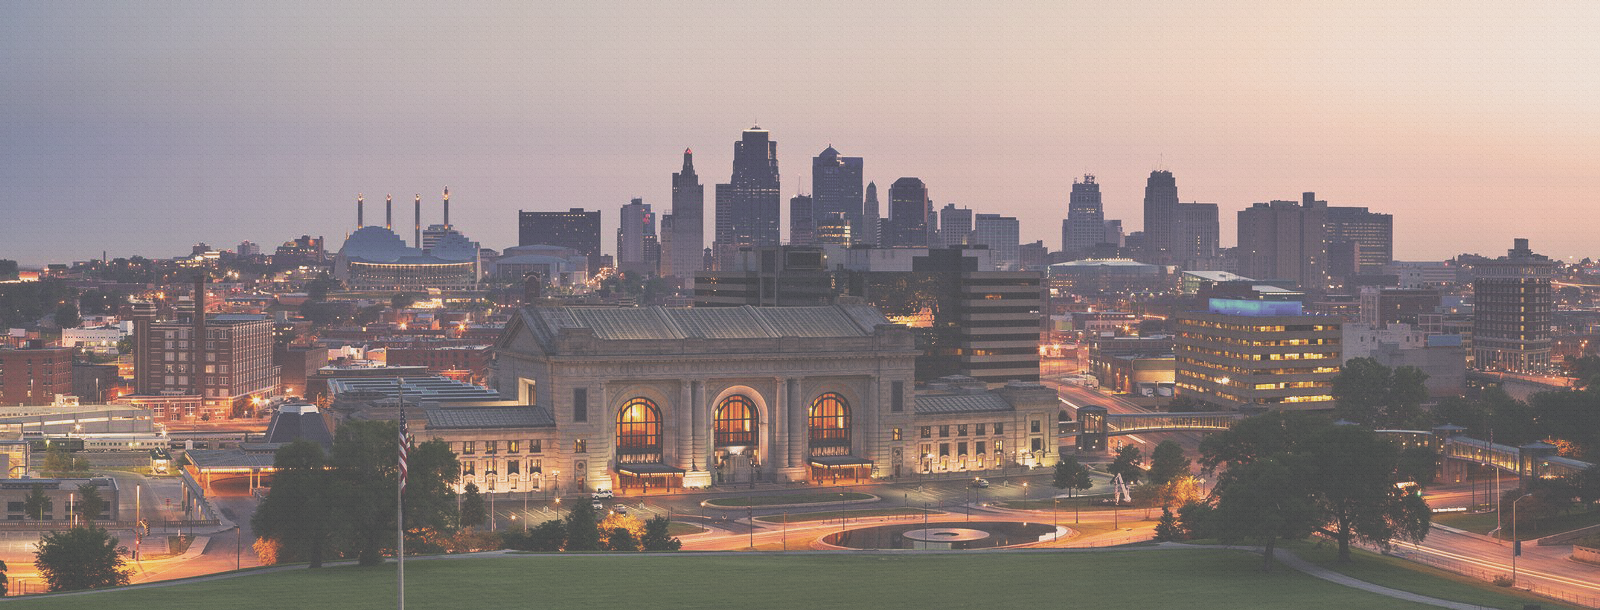 unionStation3.png